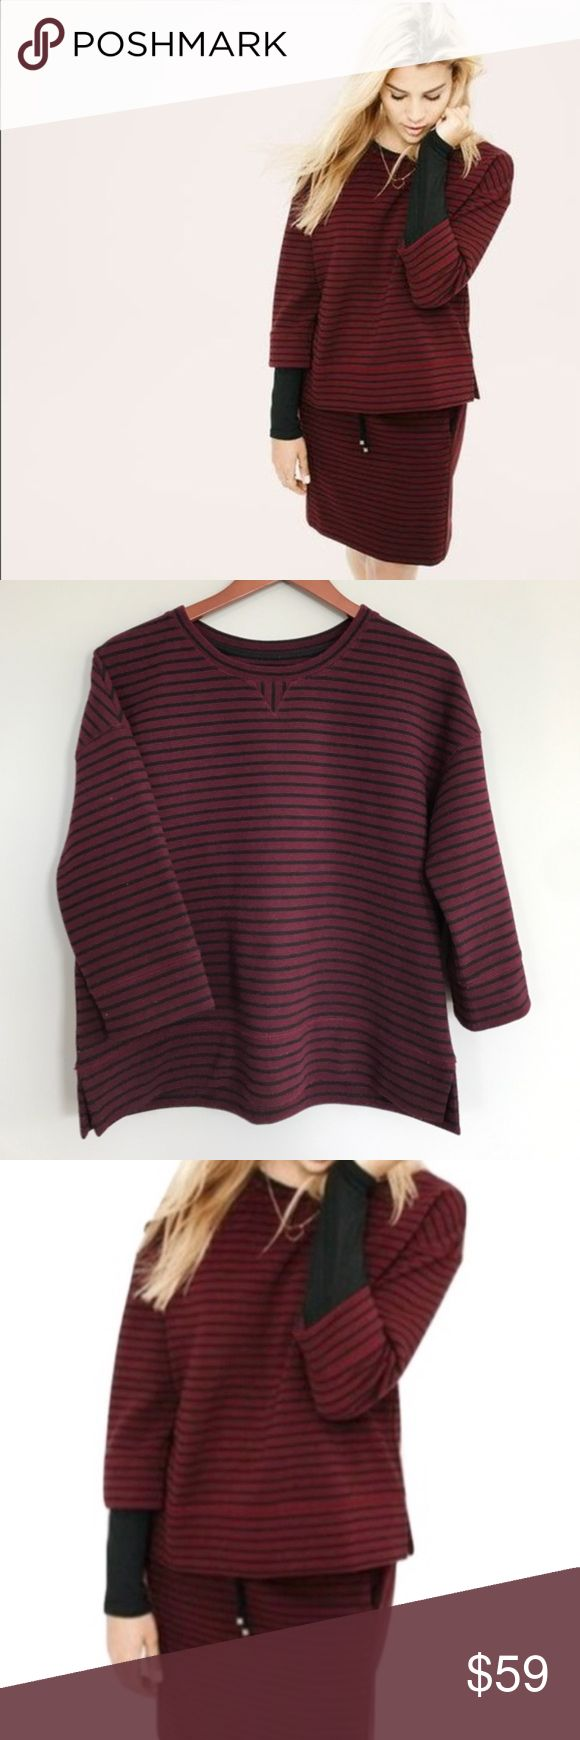 Like New Lou & Grey Ottoman Striped Popover in XS Like New Lou & Grey Crewneck in Wine and Black size XS.  An easy, texture-rich piece for your every day.  Ottoman ridges take touchable texture to a whole new level.   Can be layered during the cold winter months!  - Crew neck - 3/4 sleeves - Drop shoulders - Side slits - Banded neckline, cuffs and hem  Thick and soft. Fits TTS. Materials tag pictured. Machine Washable.   Accepting offers on this item. Happy to take measurements and answer…